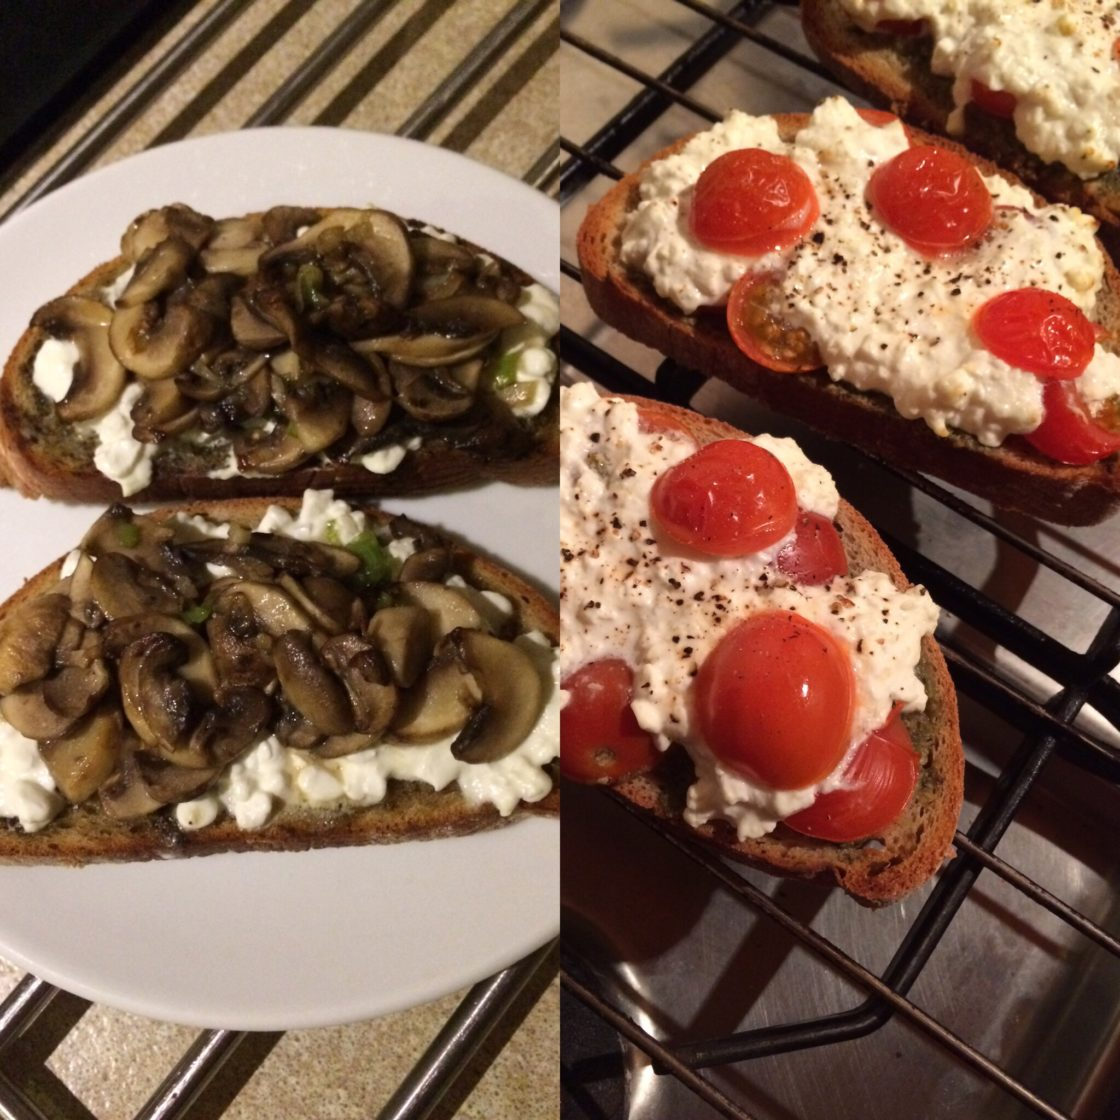 Cheesey Pesto Toasts; Delalicious